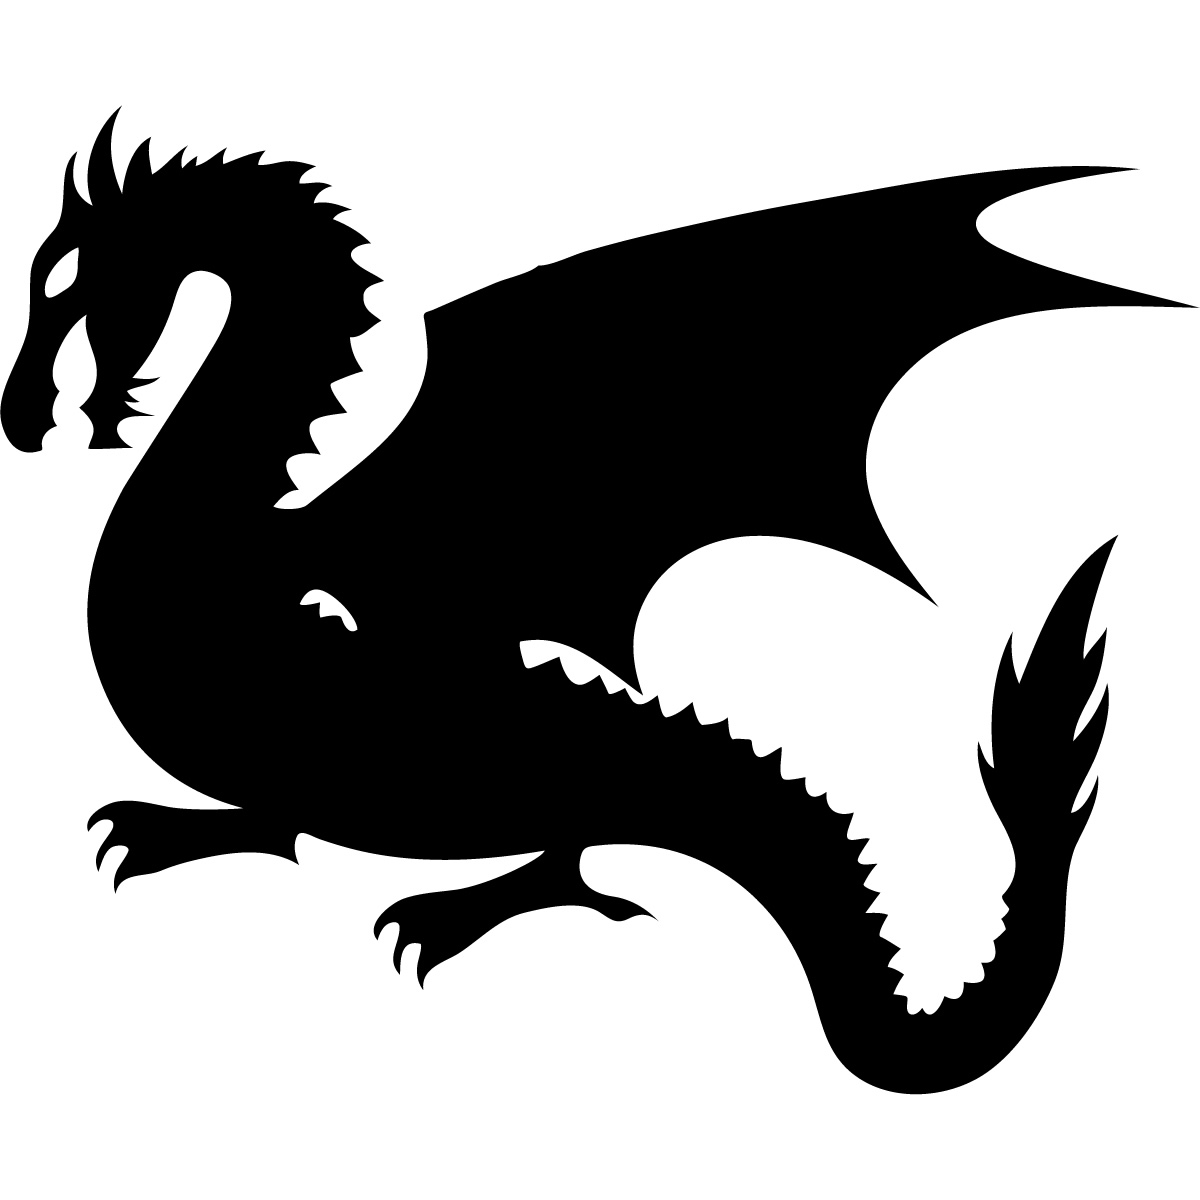 Baby dragon clipart black and white svg royalty free Cute baby dragon clipart free images image 6 - Clipartix svg royalty free